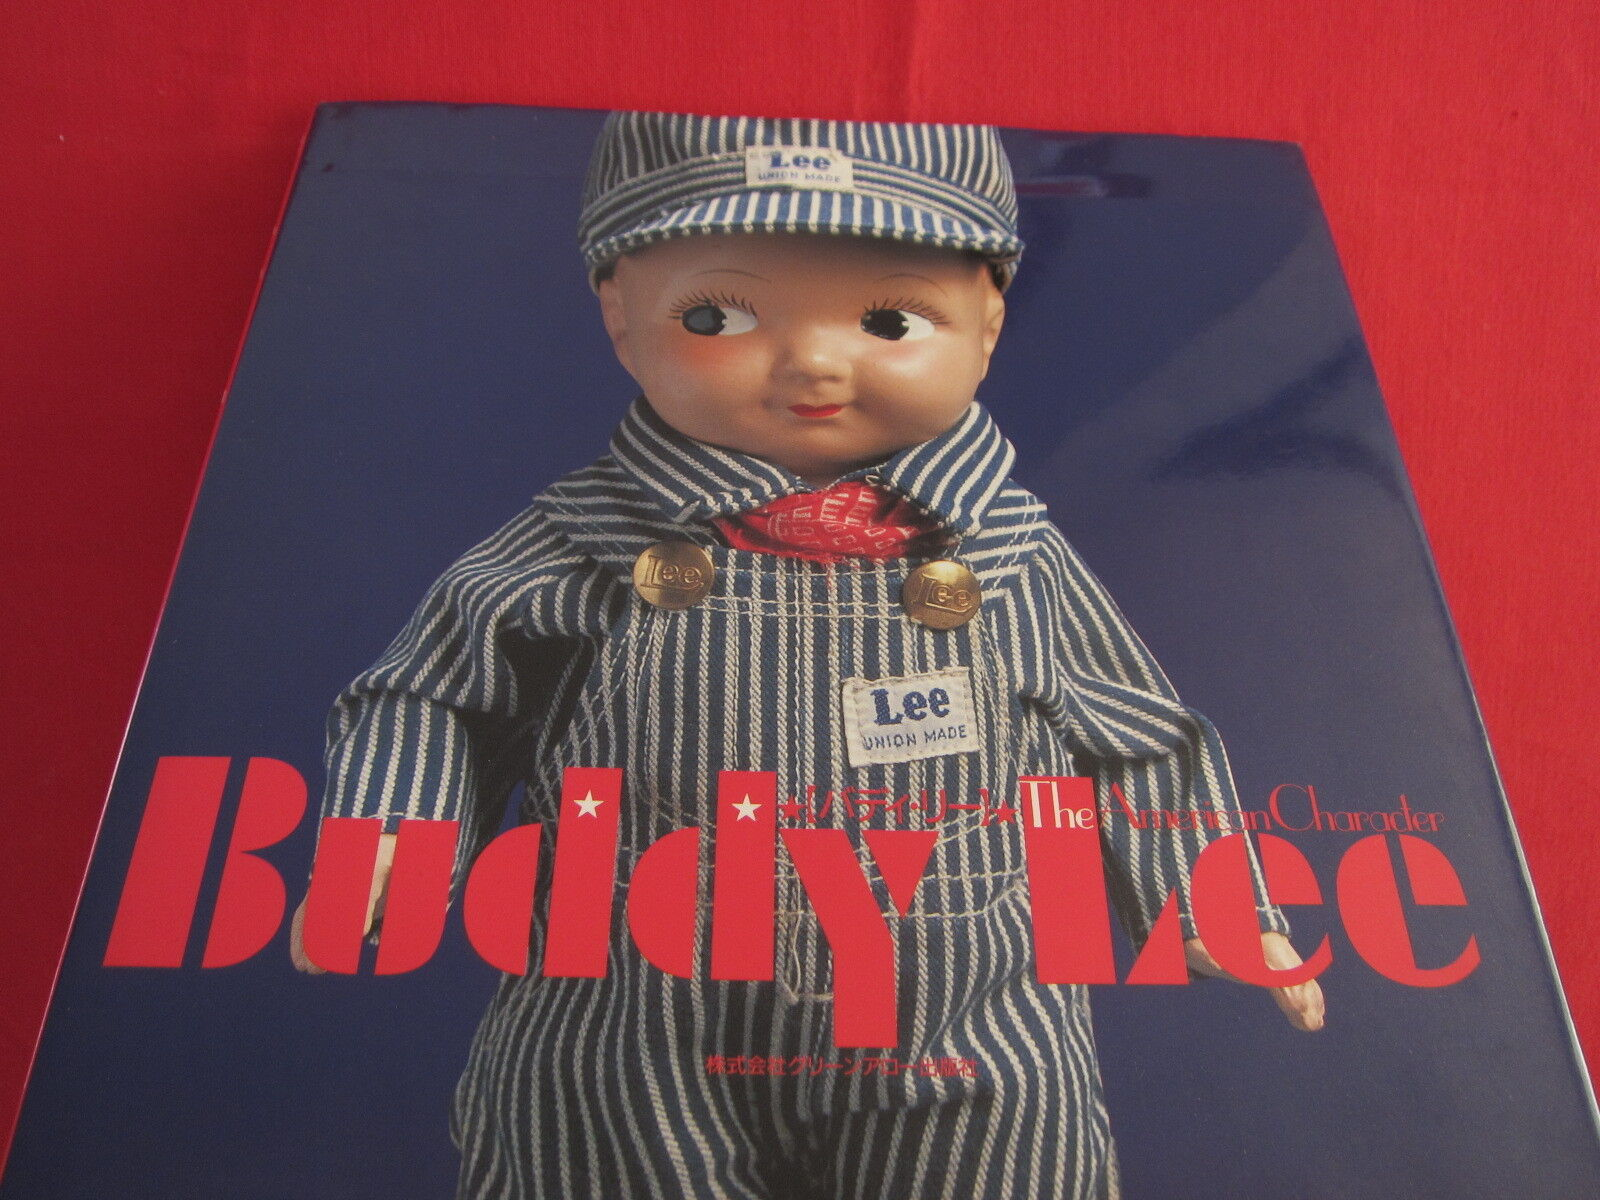 Buddy Lee Collection Fan Book